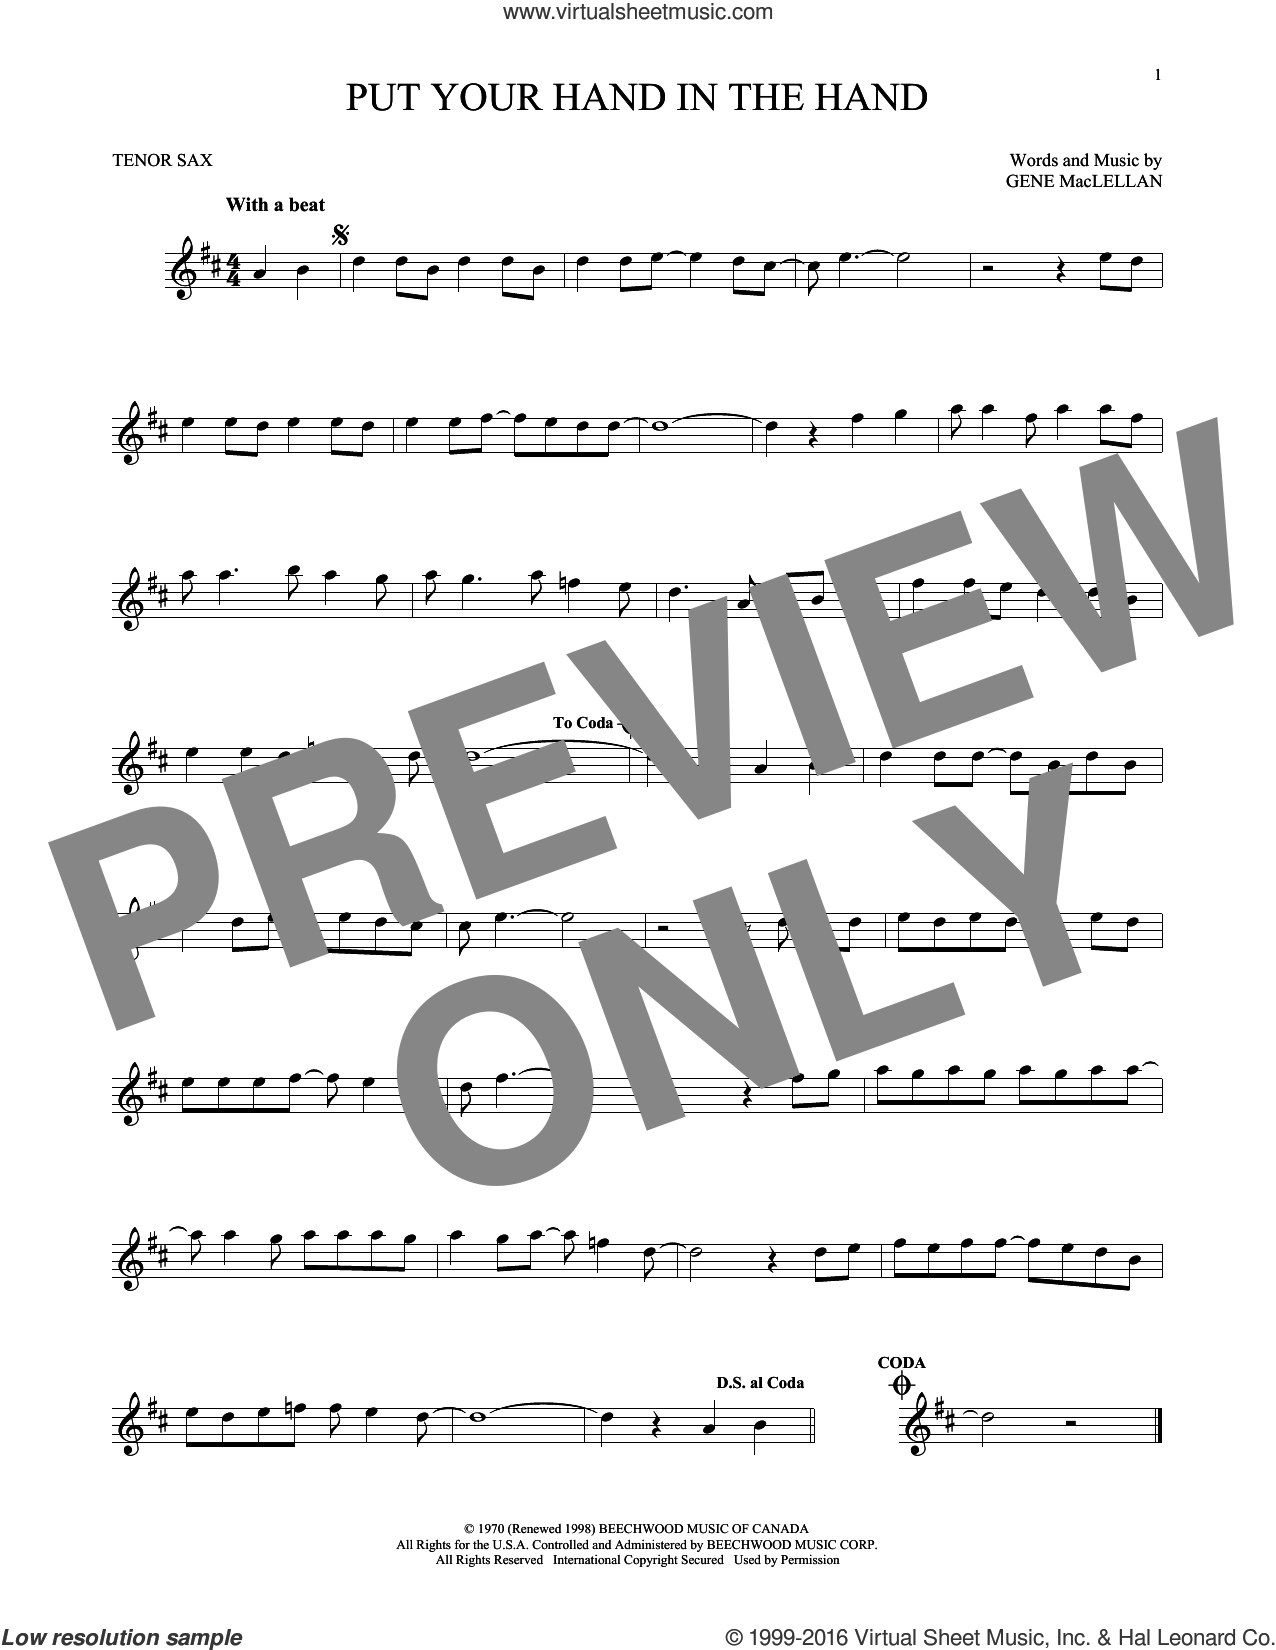 Put Your Hand In The Hand sheet music for tenor saxophone solo by Gene MacLellan and MacLellan and Ocean, intermediate skill level